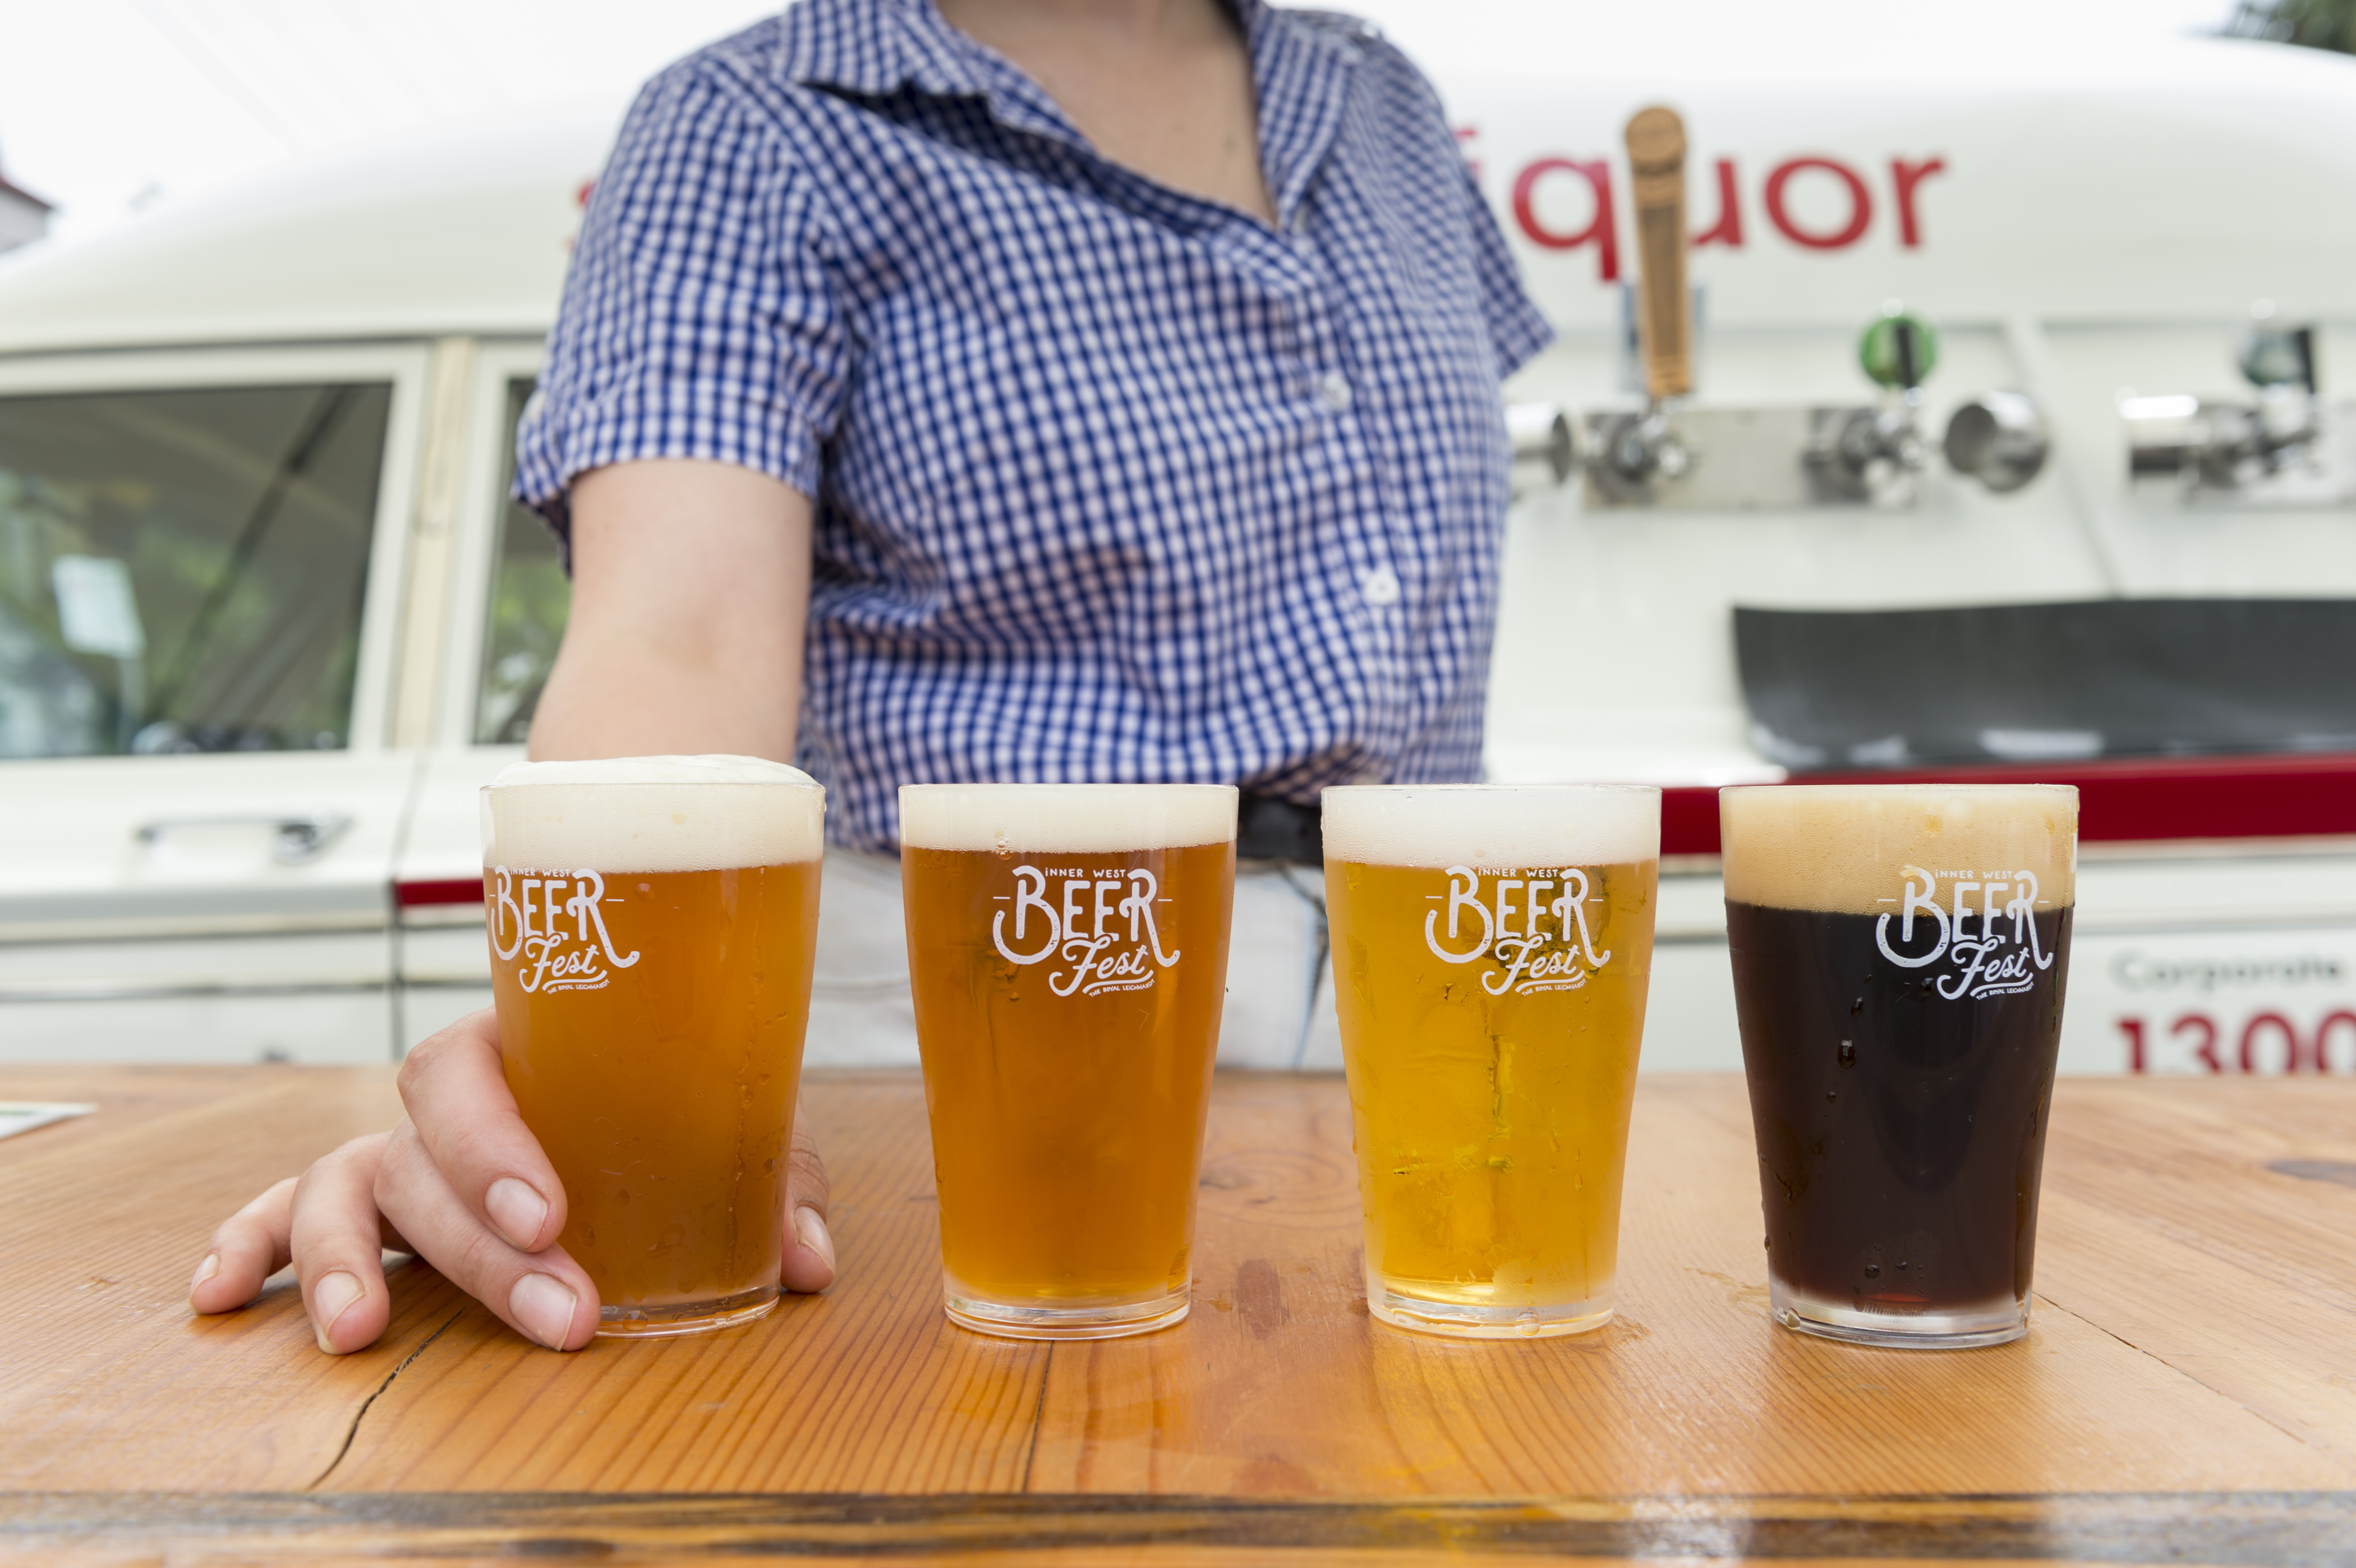 Inner West Beer Fest is back for its third year